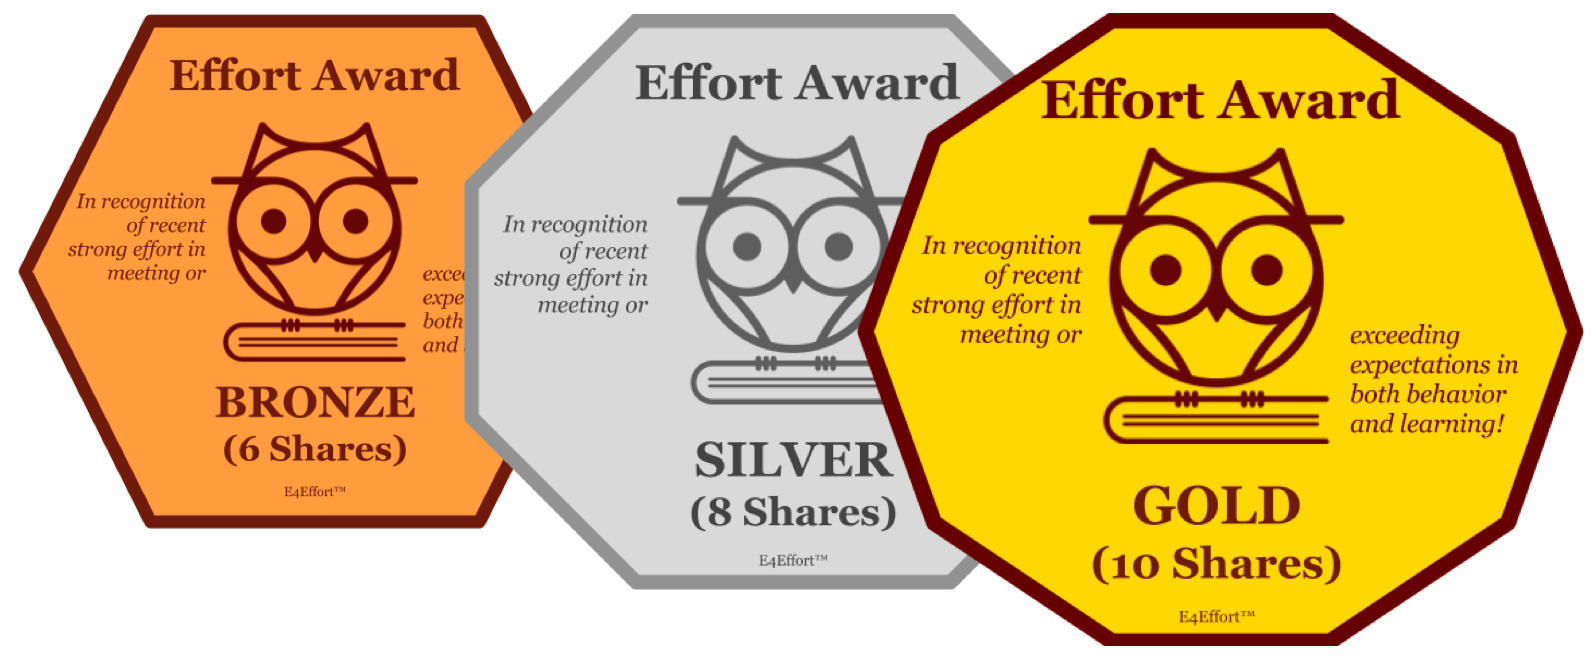 Recognition e4effort if you are sticking with the free bronze plan in lieu of badges you may want to give recognition winners a small effort award certificate yelopaper Image collections